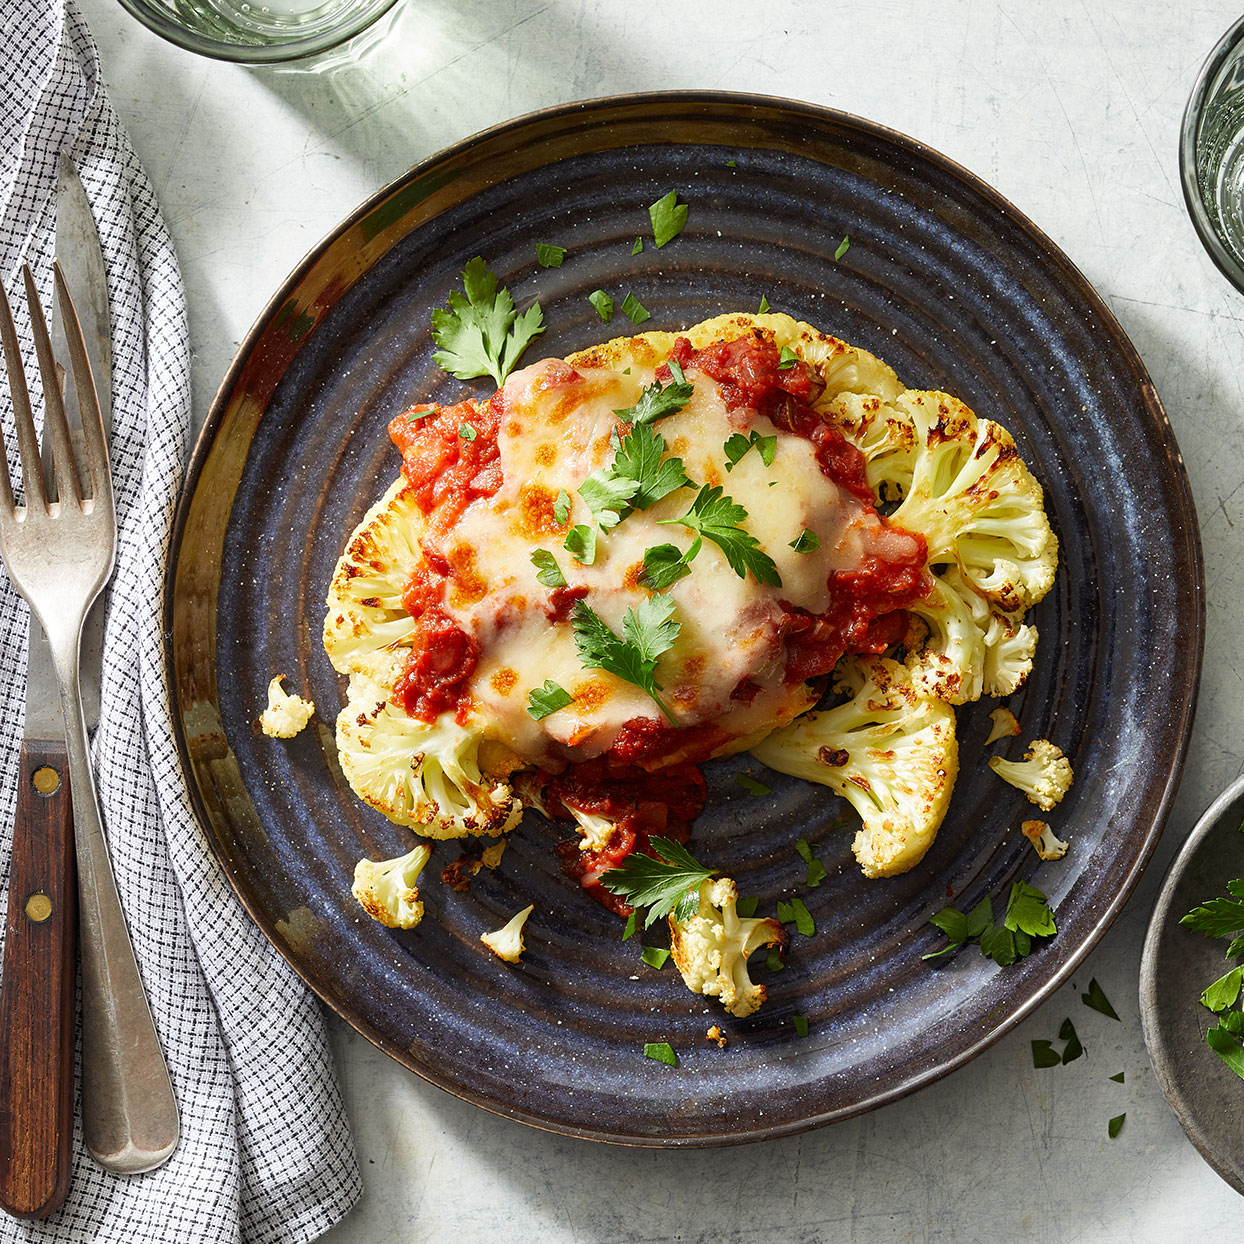 Cauliflower Parmesan Allrecipes Trusted Brands